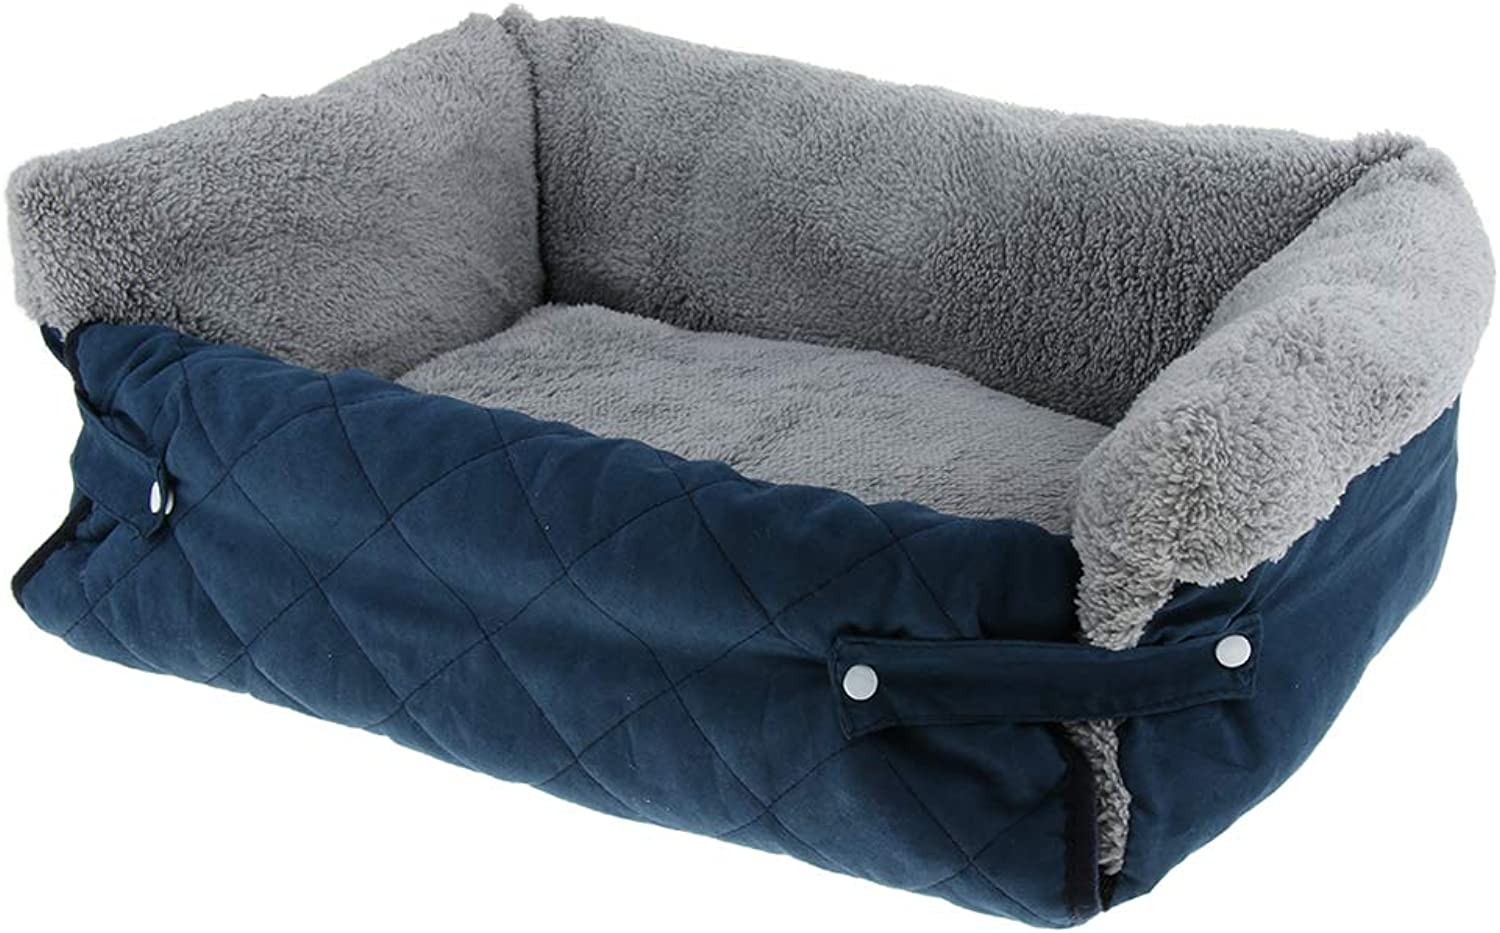 B Blesiya New Cat Dog Puppy Kennel Pet Sofa Nest Winter Warm Sleeping Pad Home Comfortable Pet Bed  bluee L